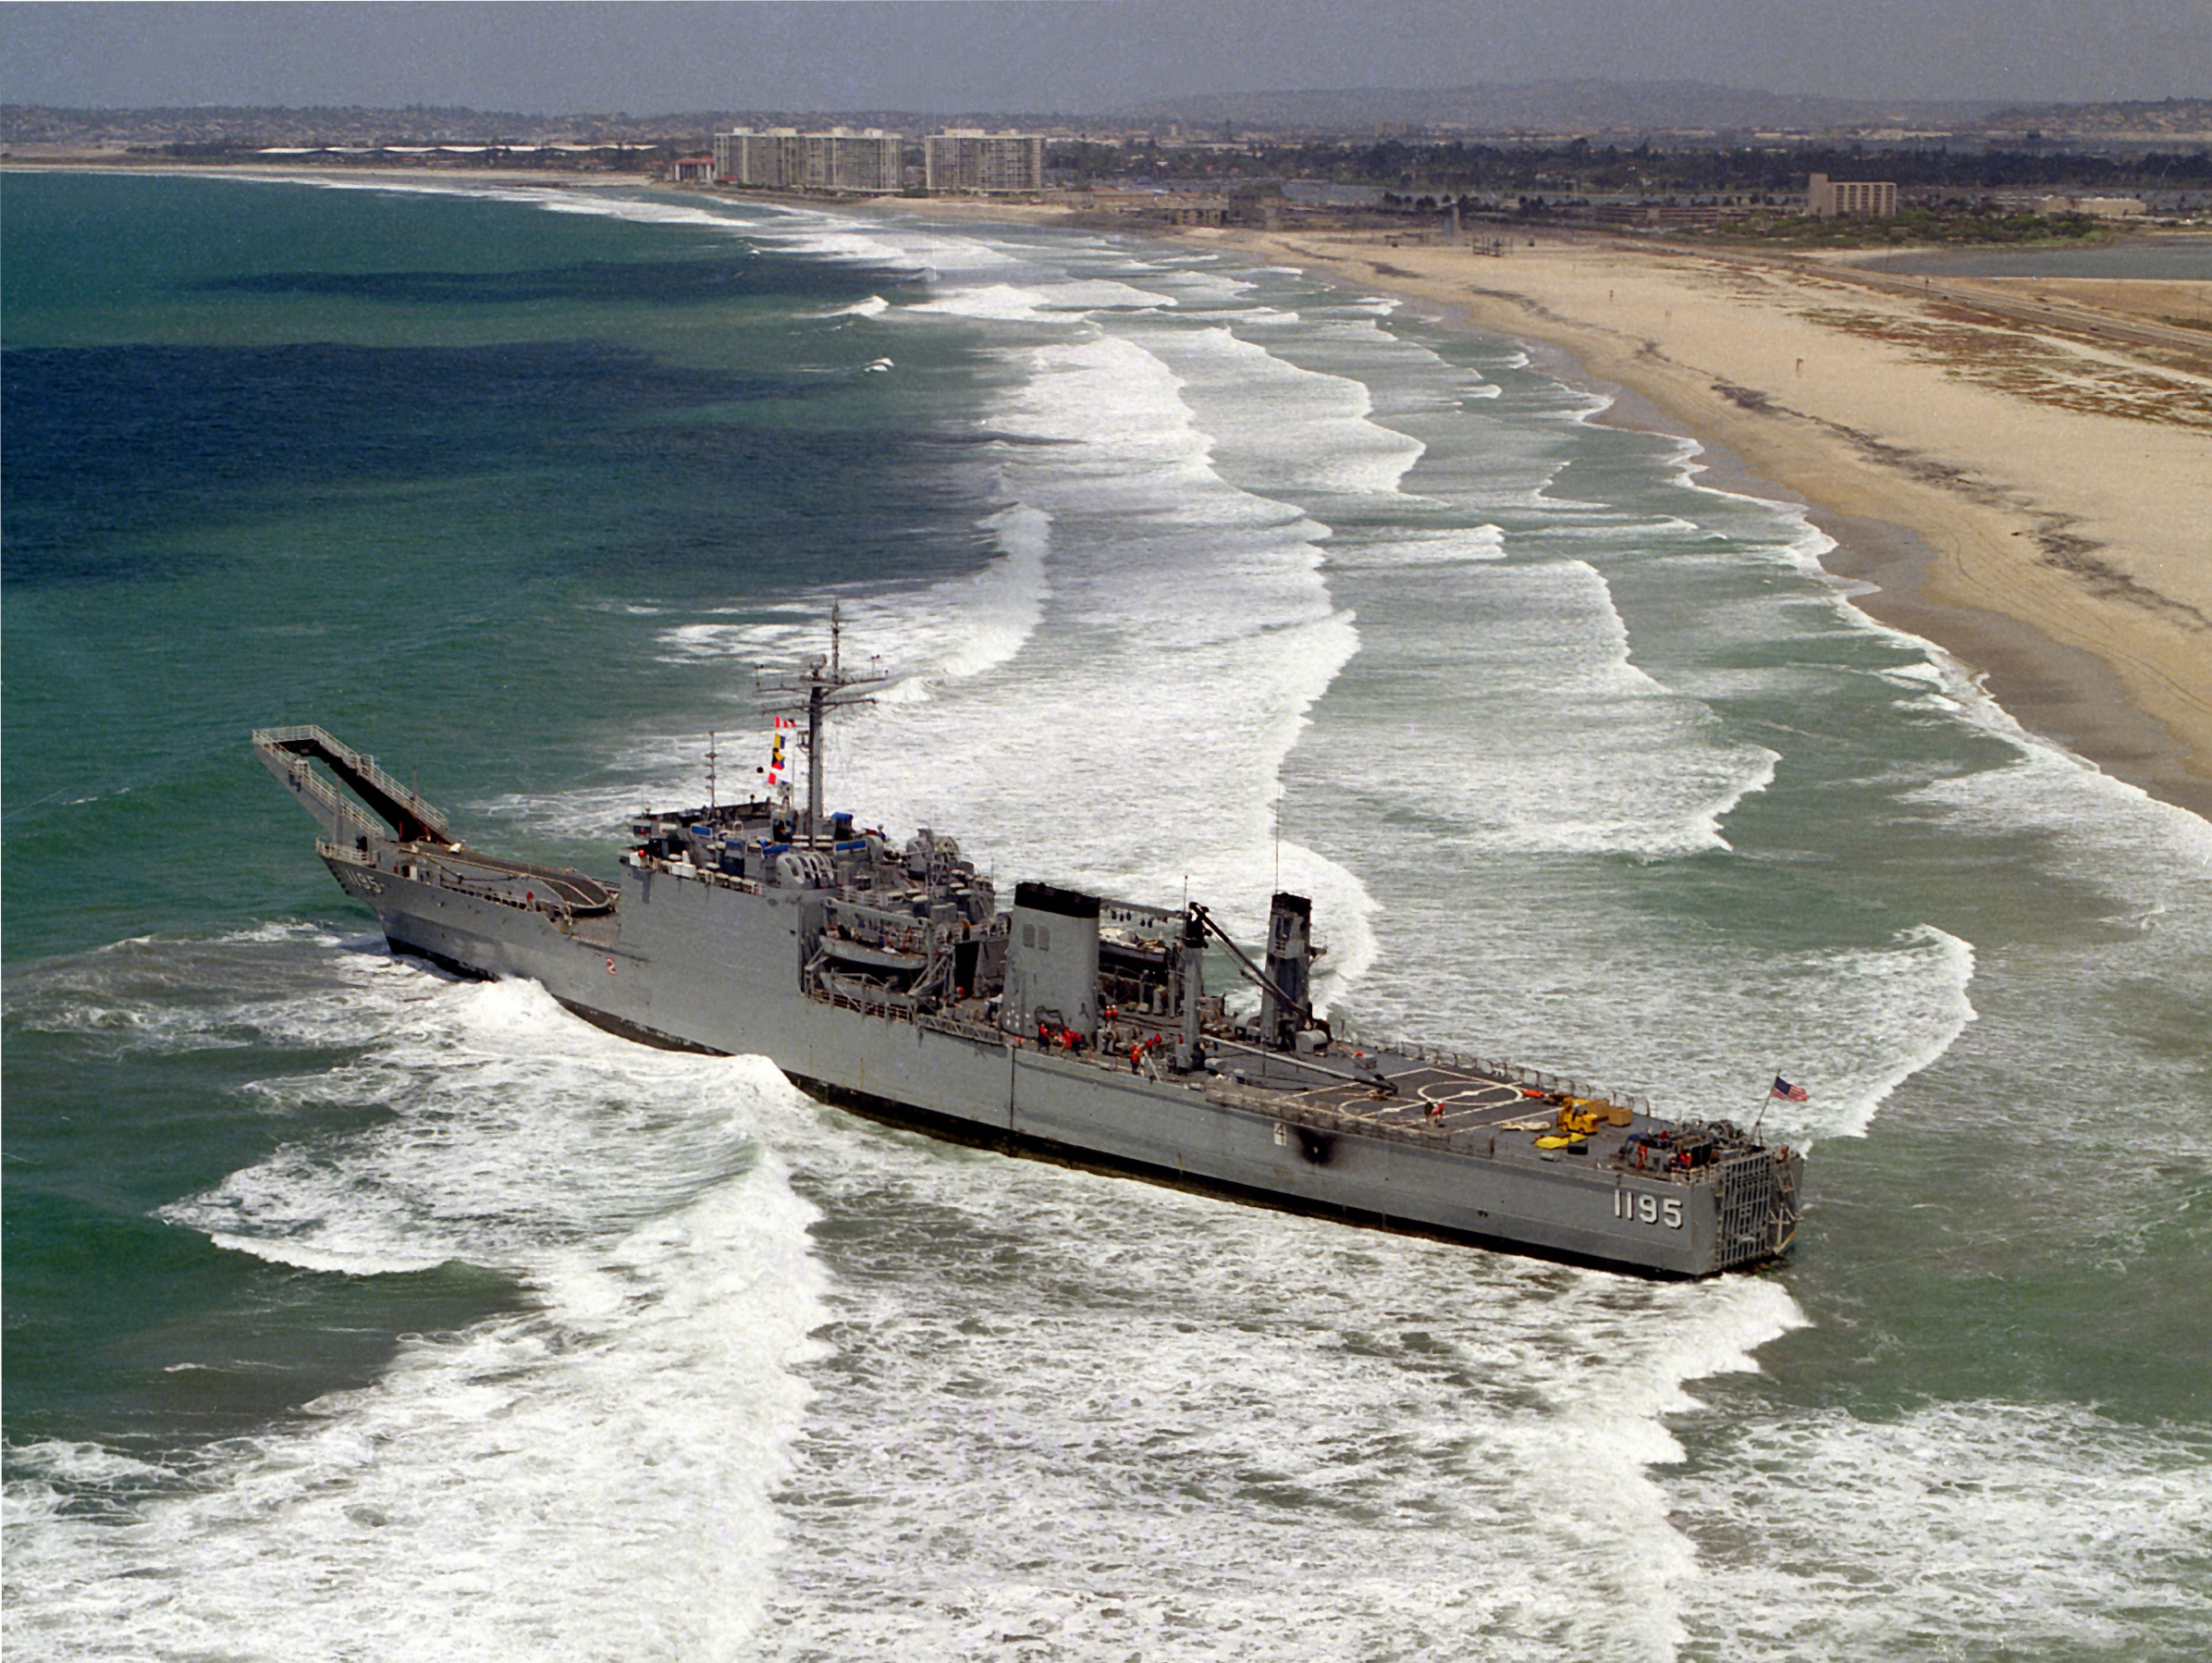 File:USS Barbour County (LST-1195) aground on Silver Strand 1984.